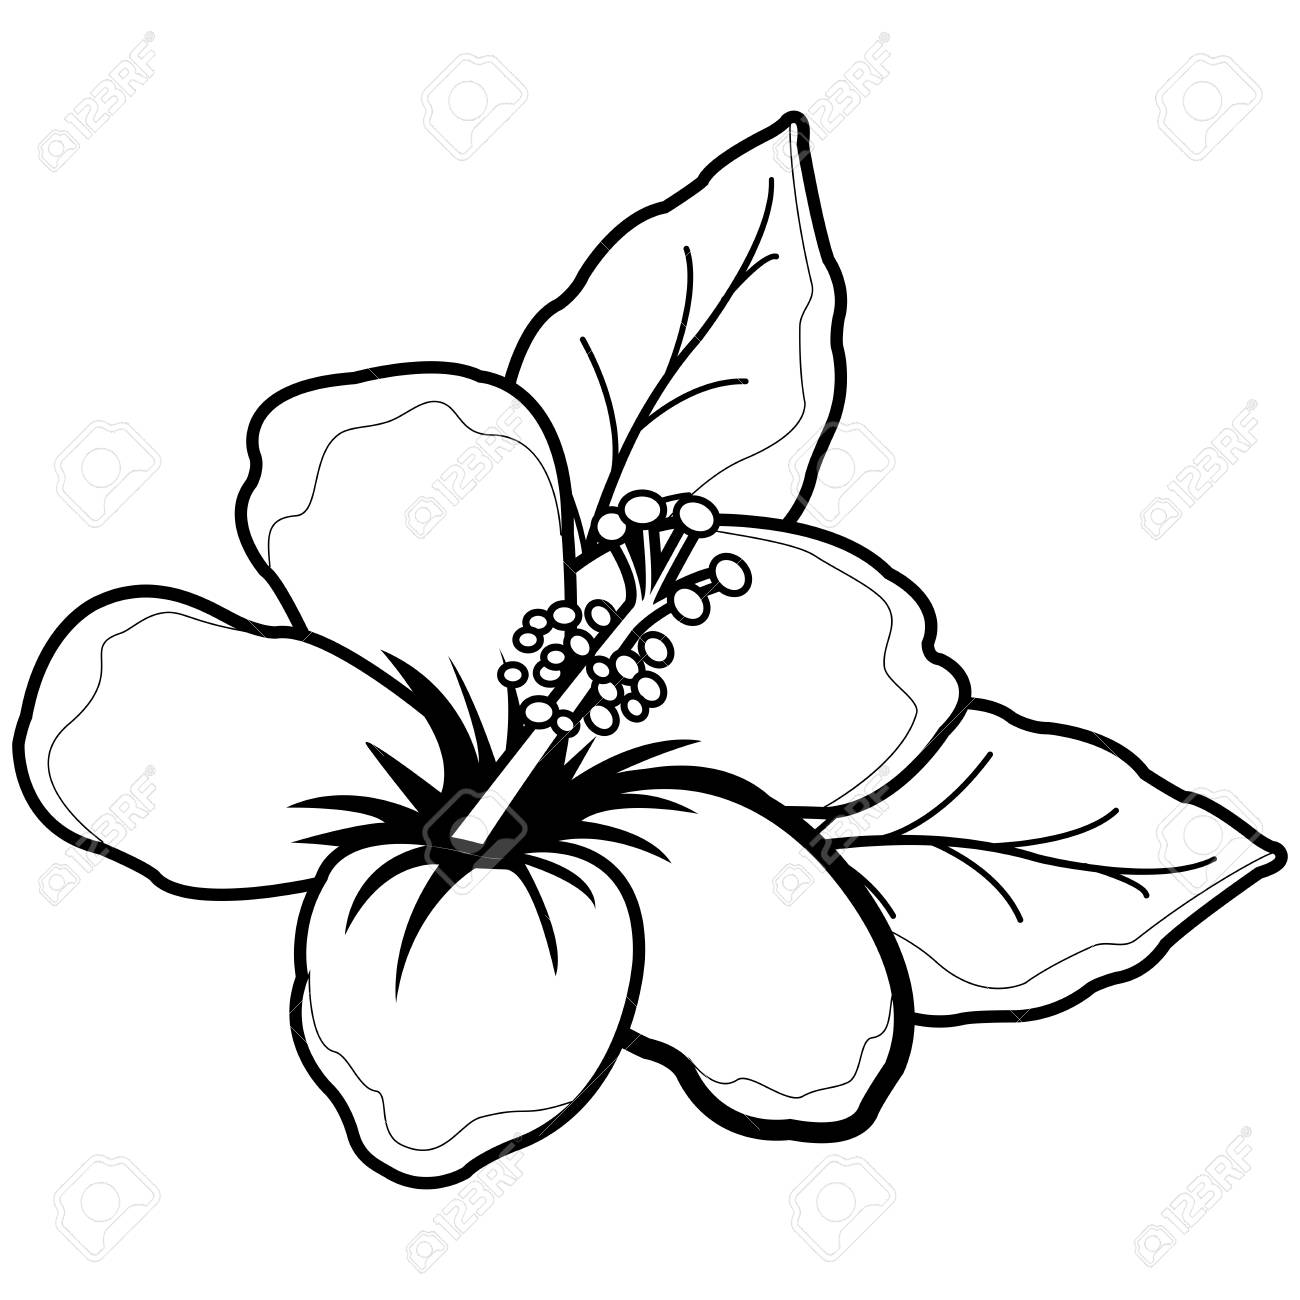 Hawaiian Hibiscus Flower Black And White Coloring Book Page Royalty